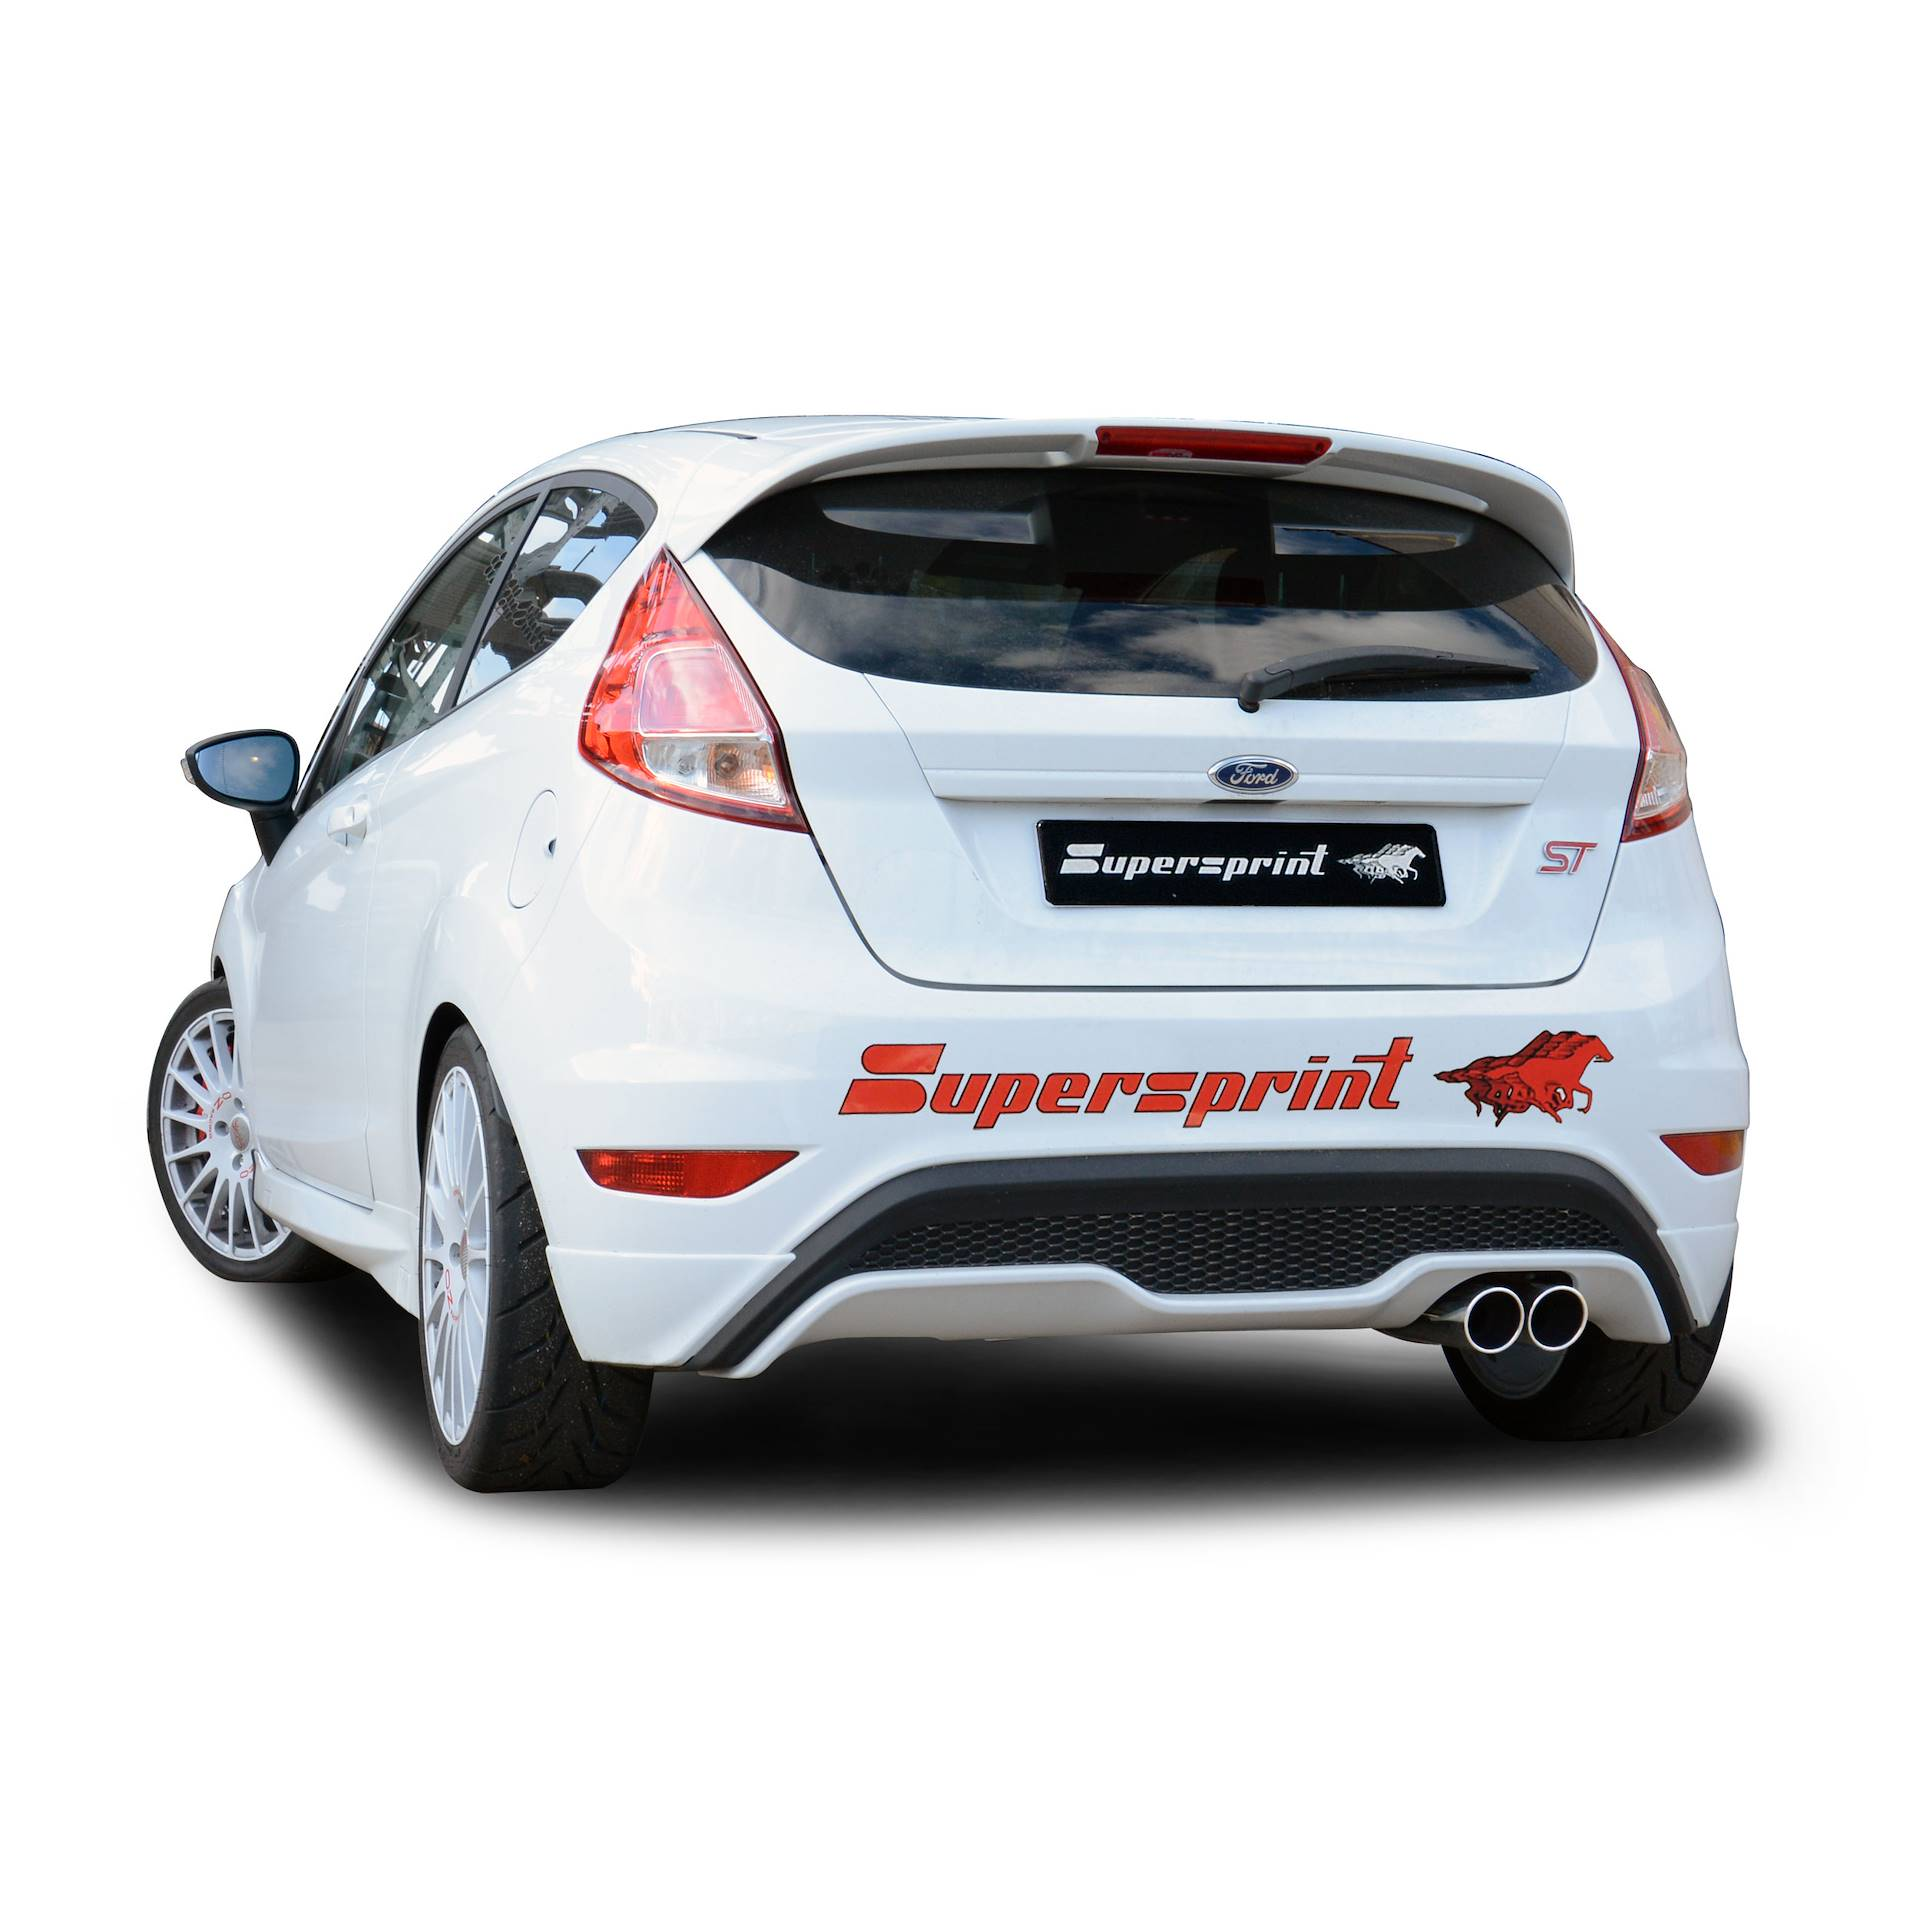 Ford - FORD FIESTA ST 1.6T (182 PS) '13 ->